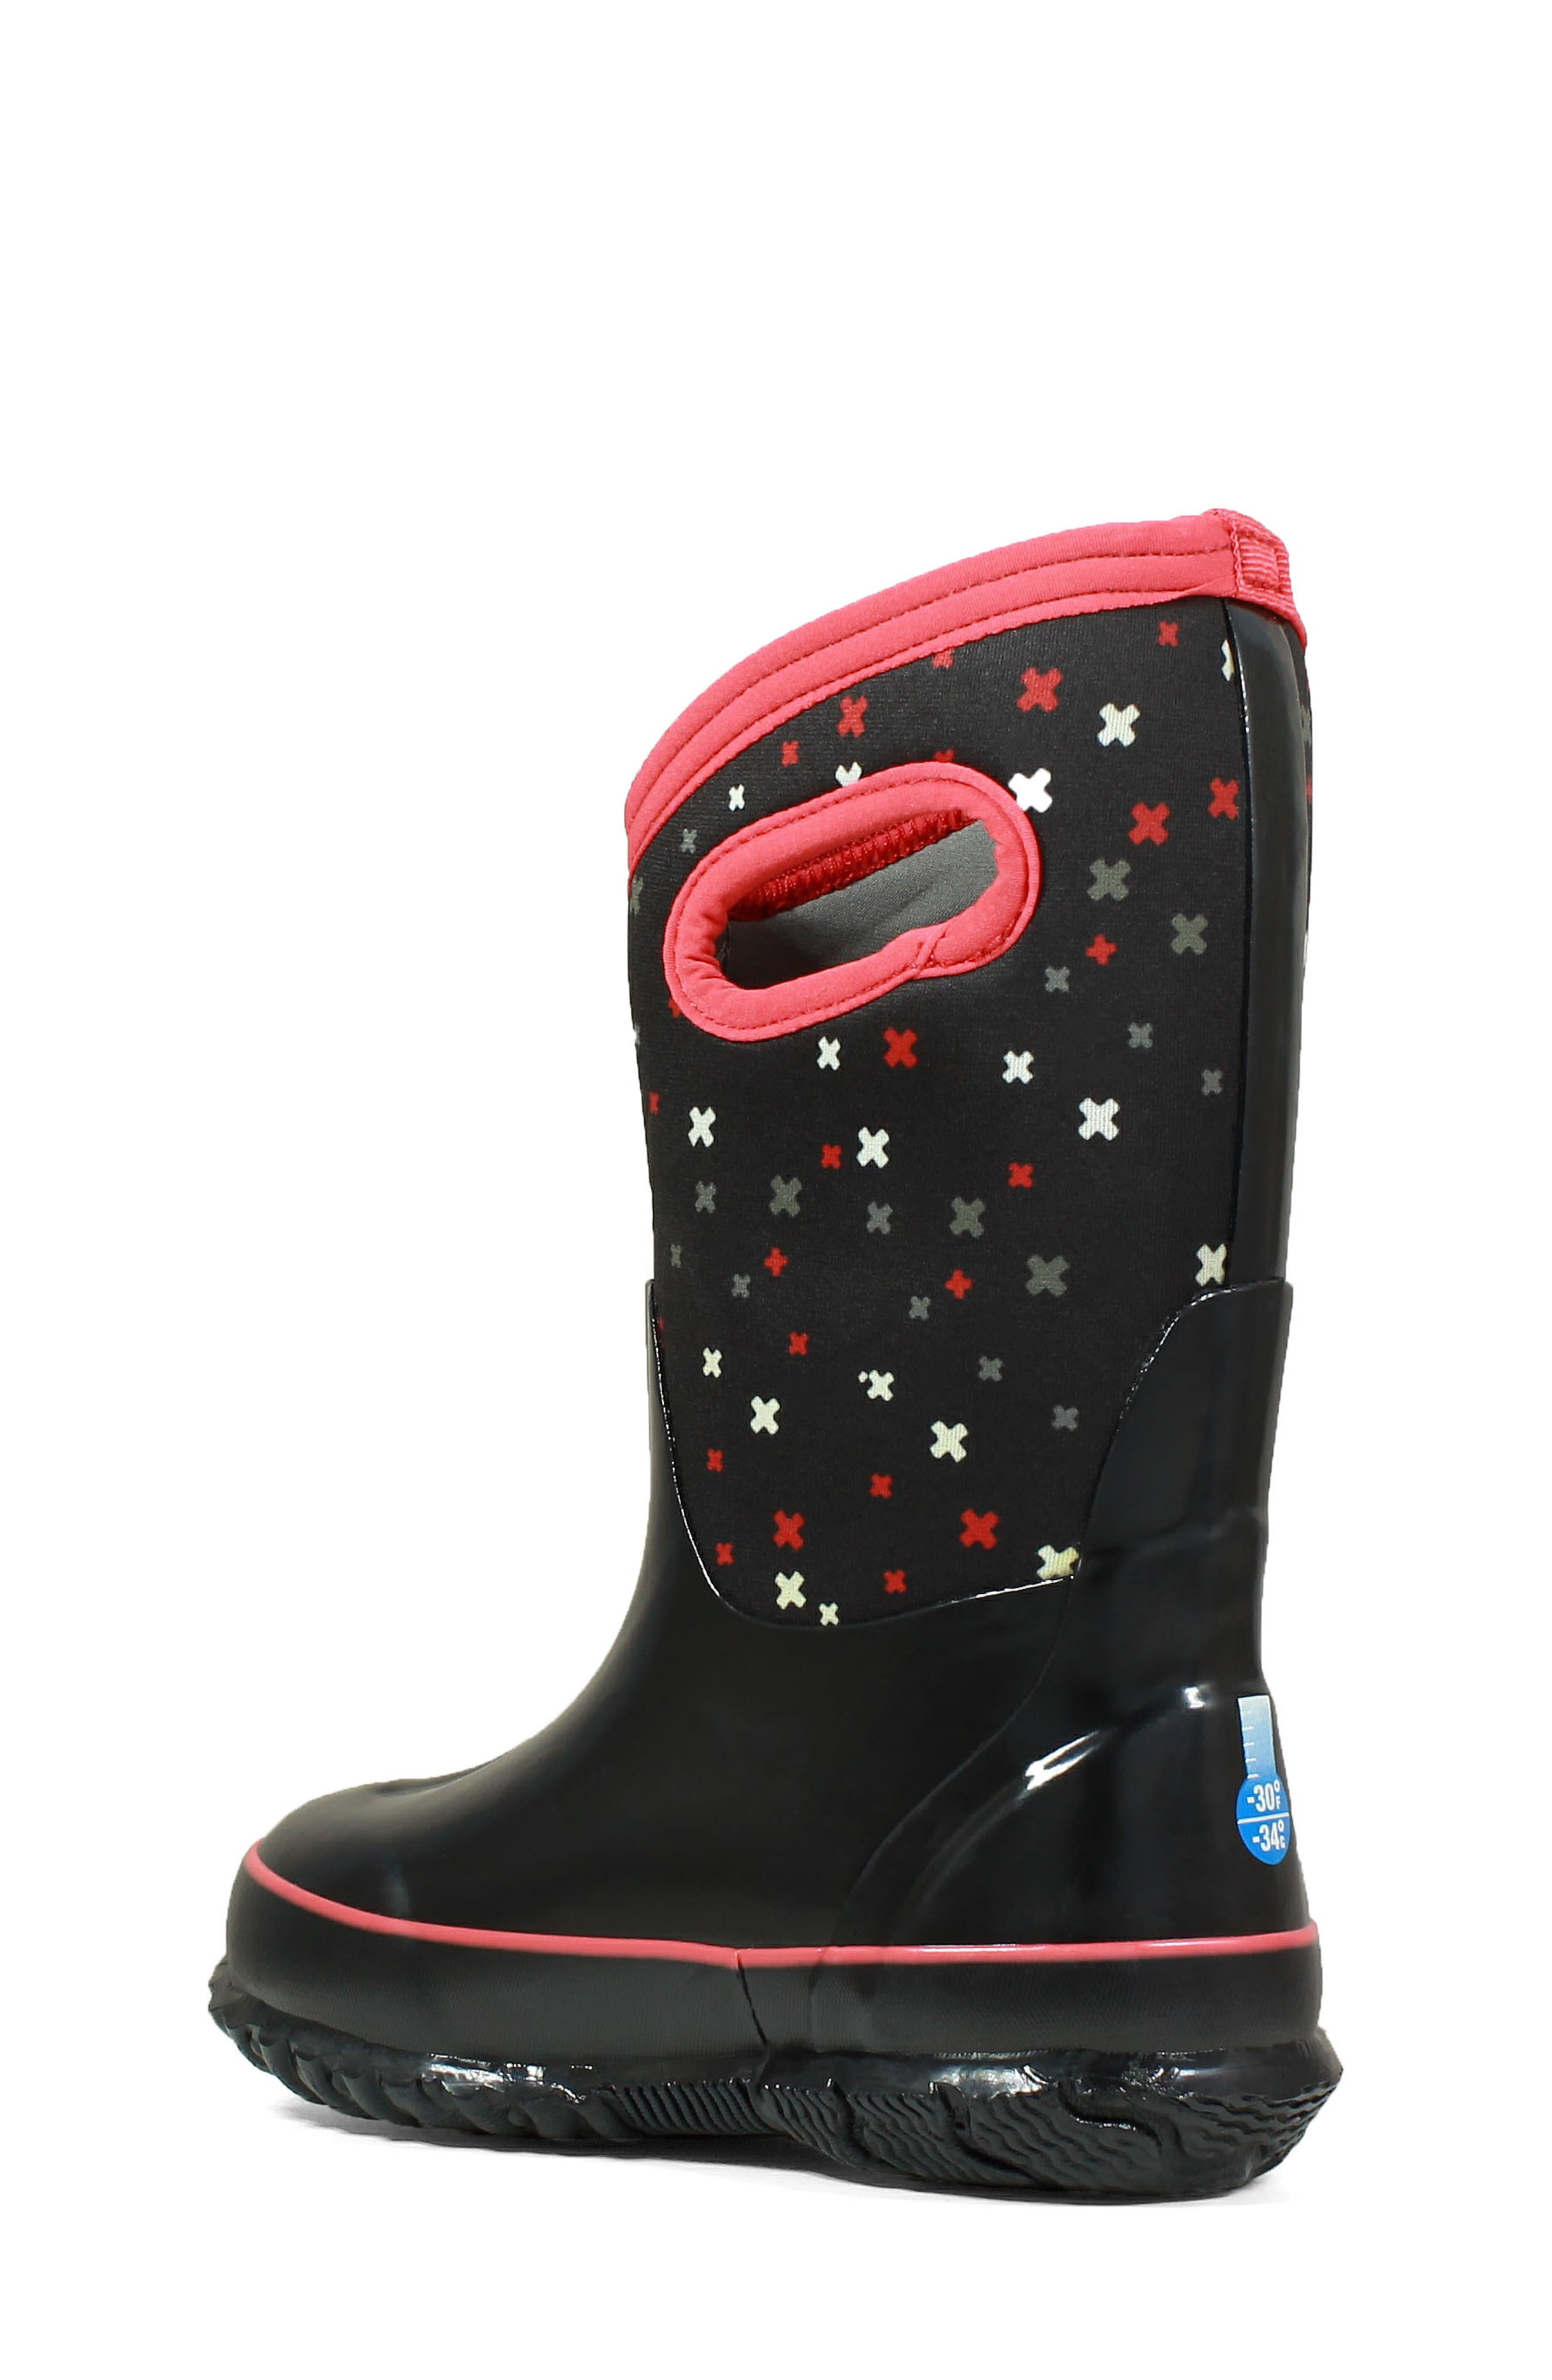 Classic Print Insulated Waterproof Boot,                             Alternate thumbnail 2, color,                             009